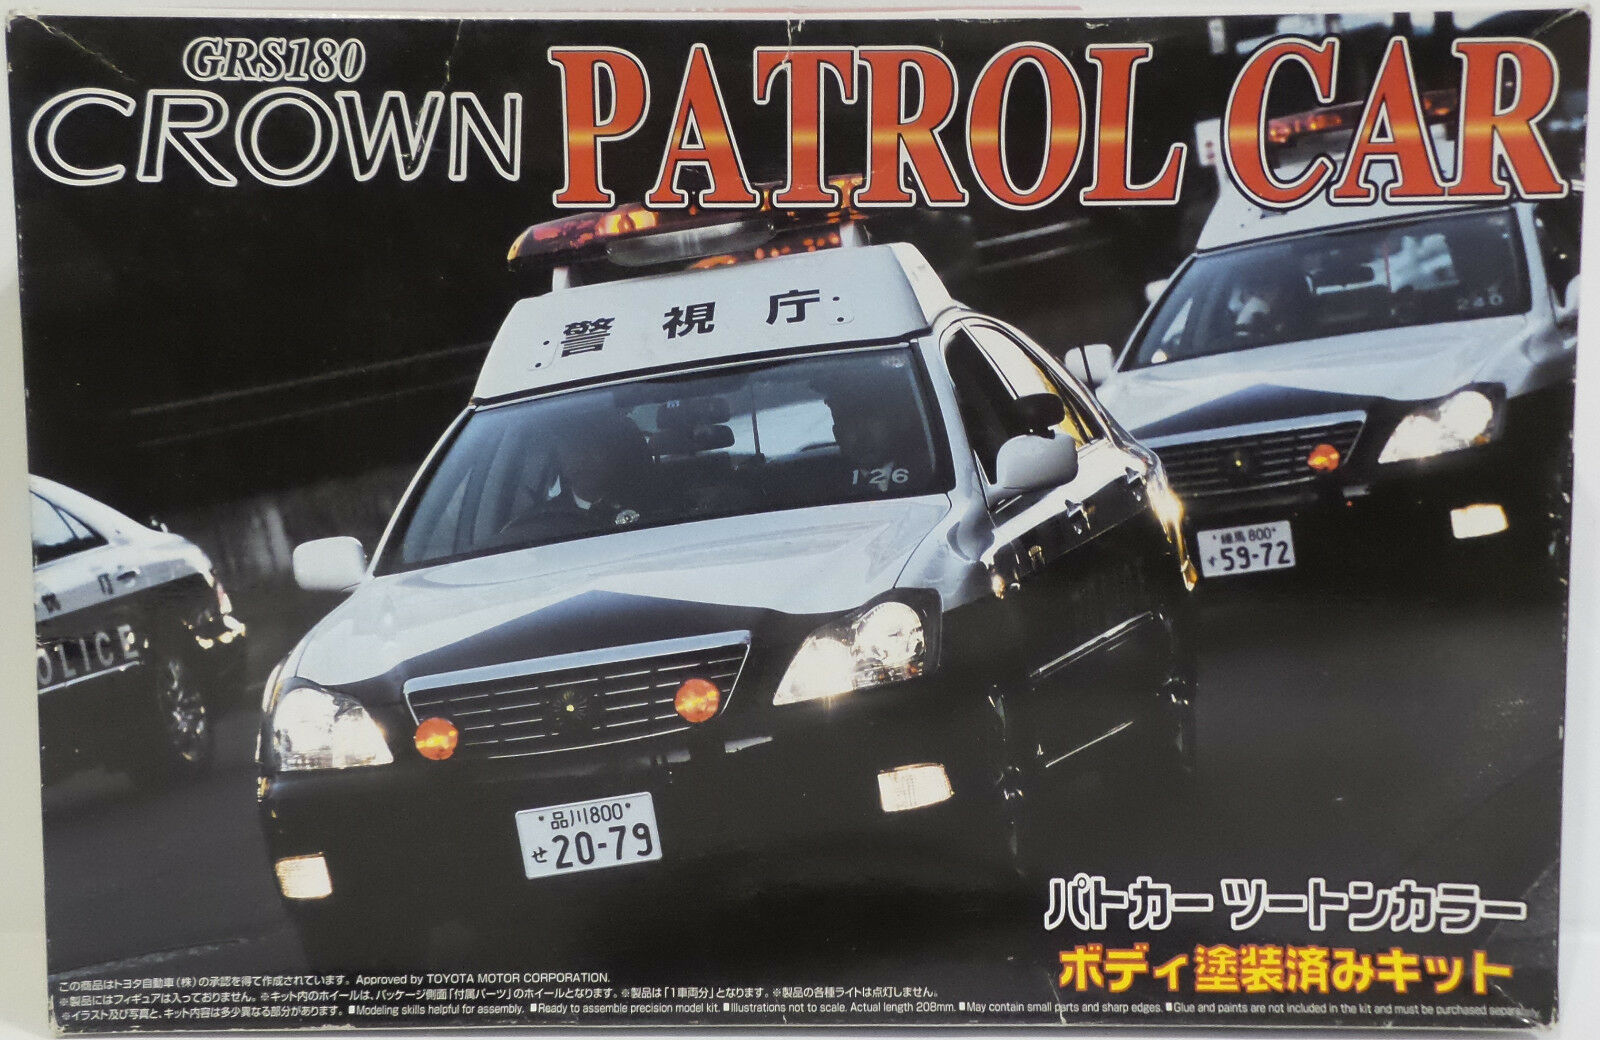 CARS   GRS 180 CROWN PATROL CAR MODEL KIT MADE BY AOSHIMA